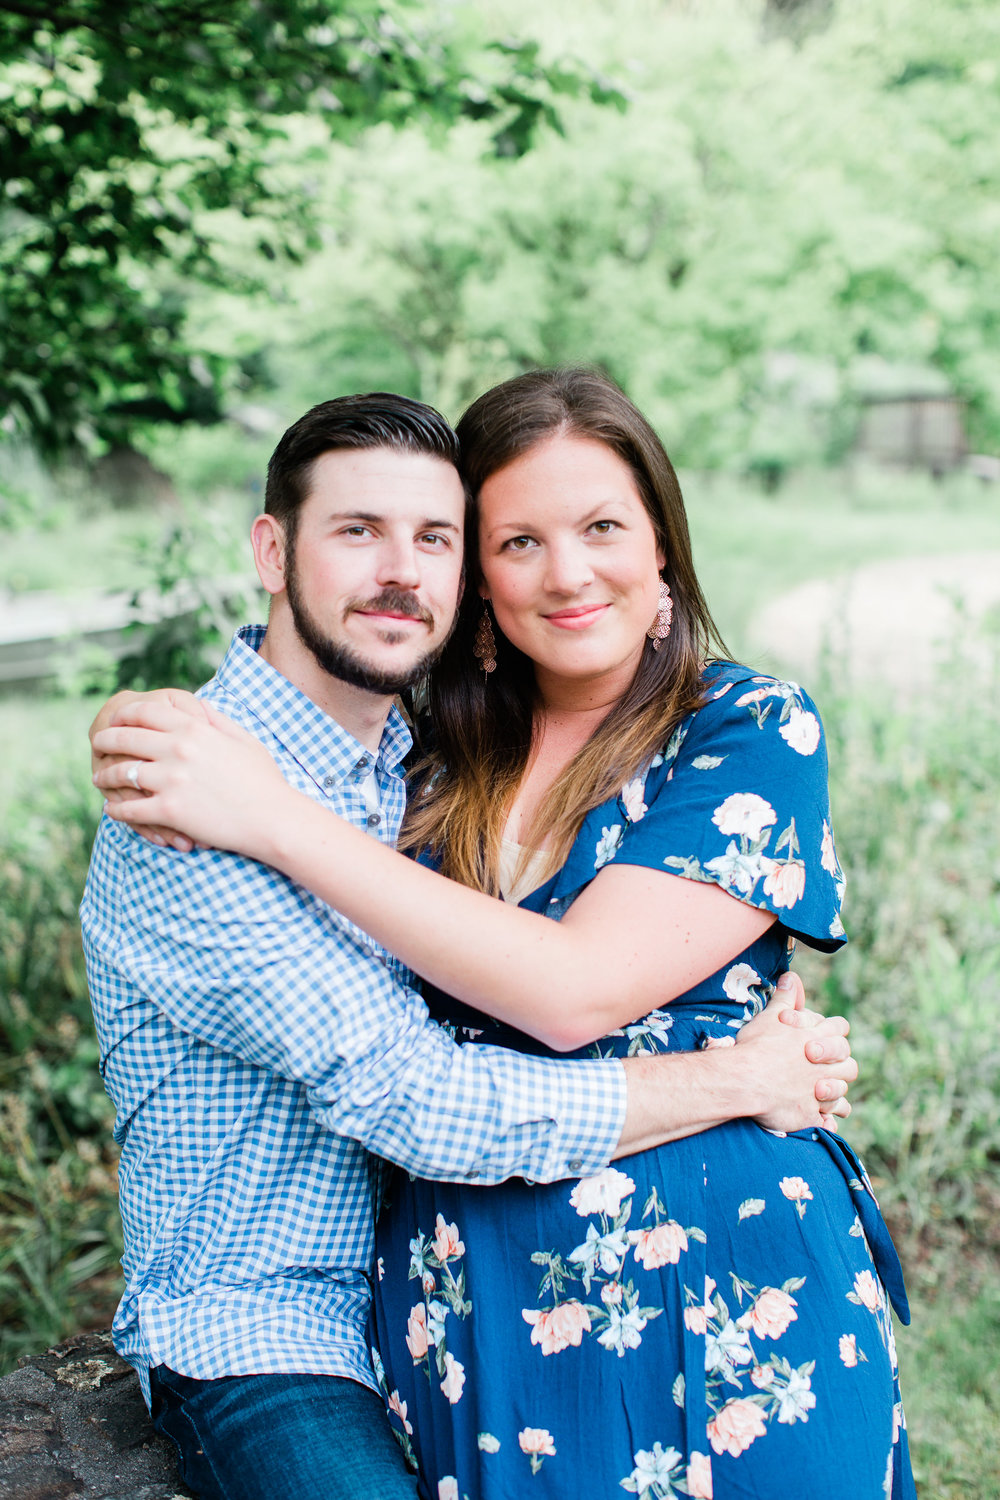 meadowlark_botanical_gardens_engagements-6550.jpg